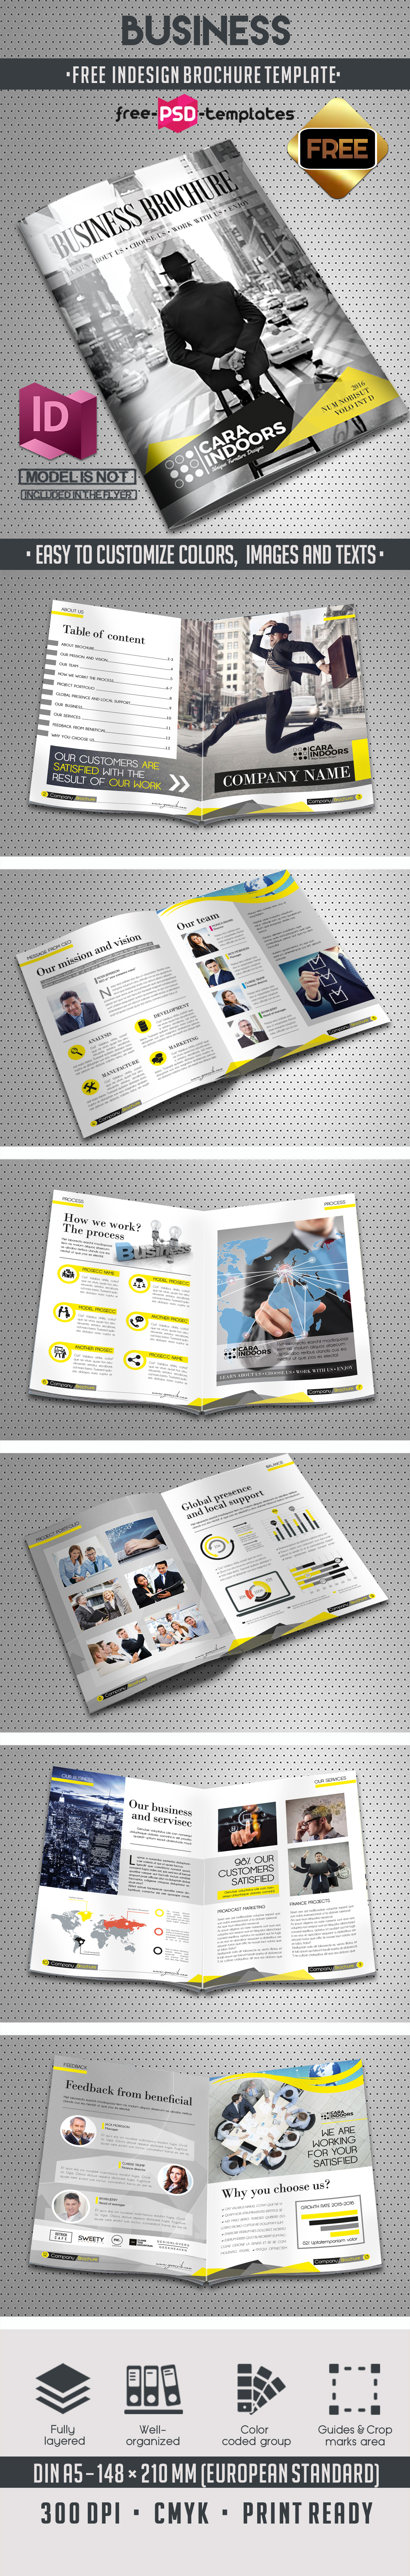 Bigpreview_free-corporate-business-brochure-14-pages-a5